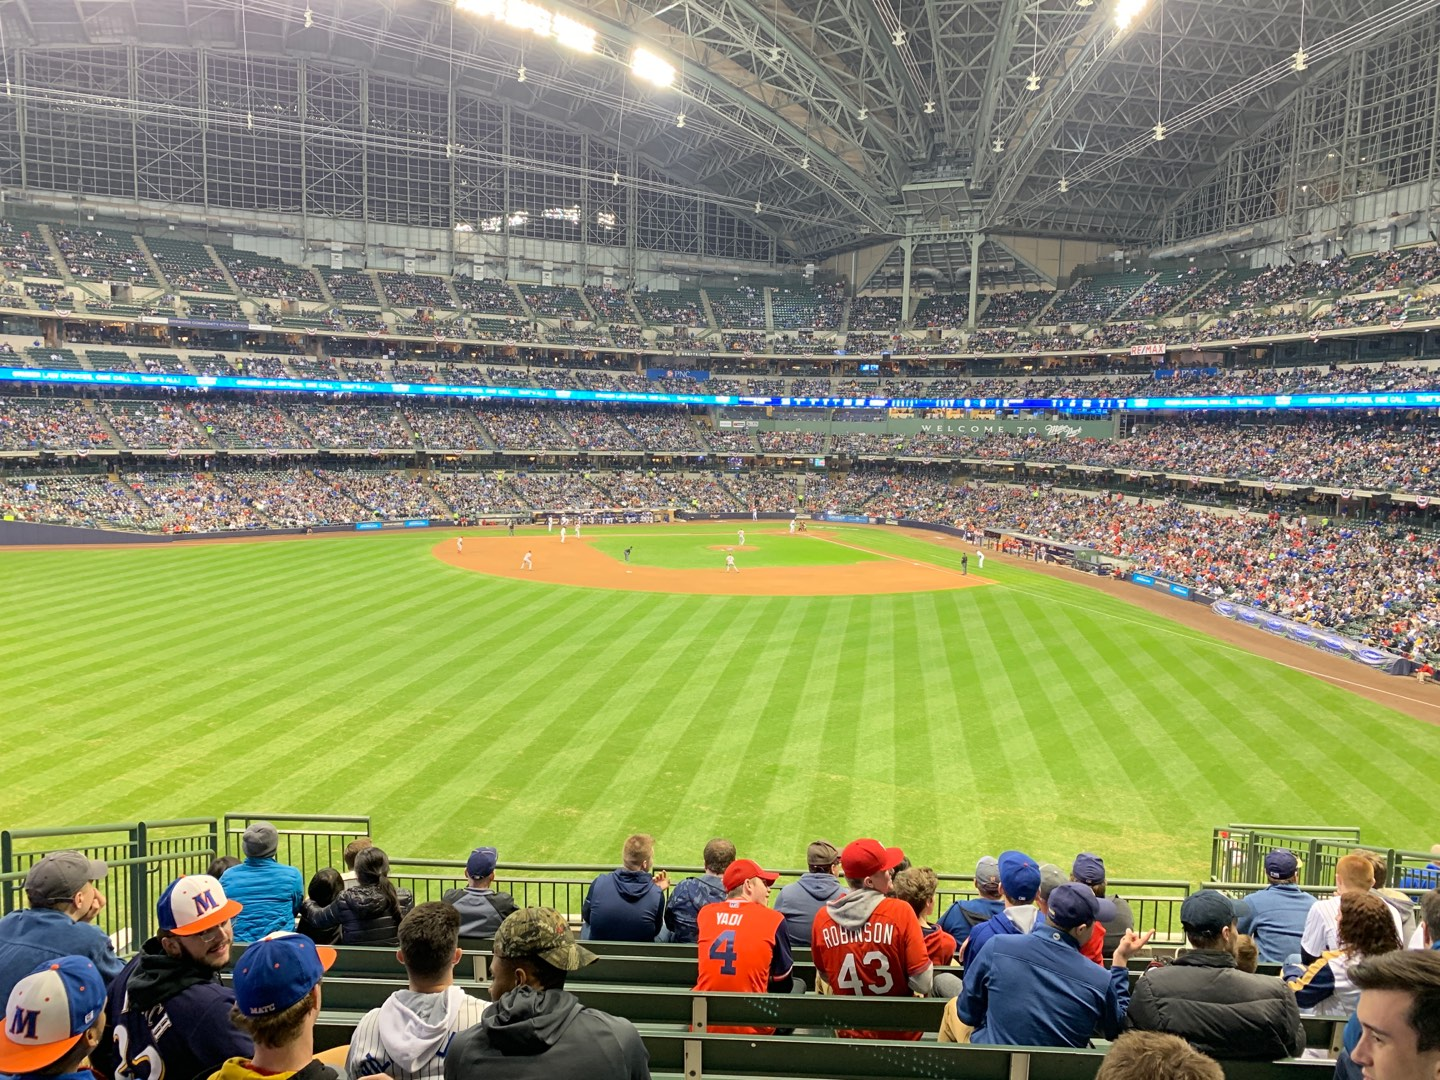 Miller Park Section 238 Row ADA Seat 9